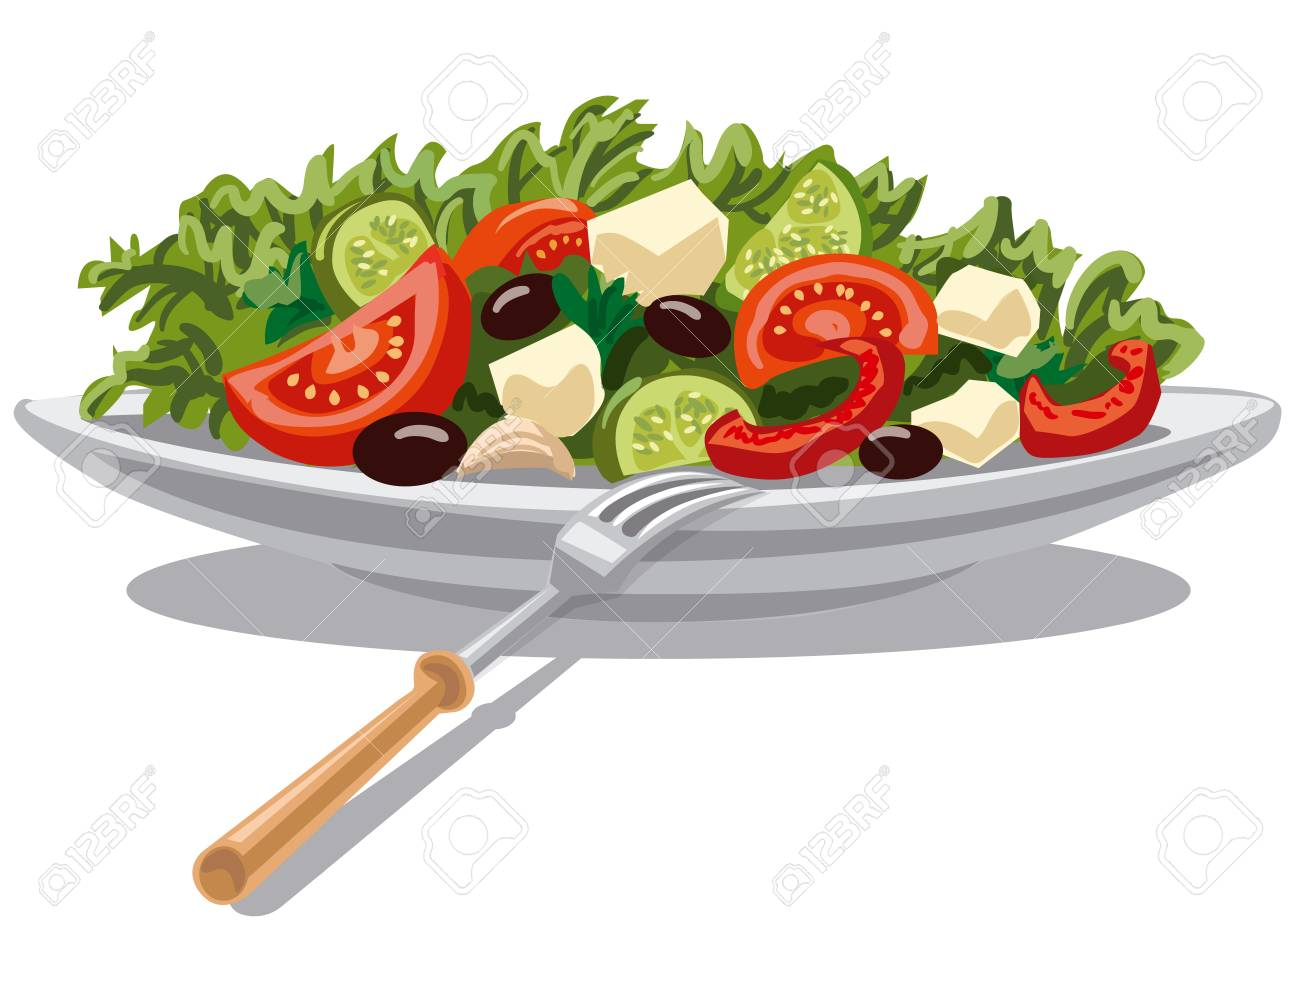 illustration of fresh greek salad with lettuce, tomatoes and olives - 110258987